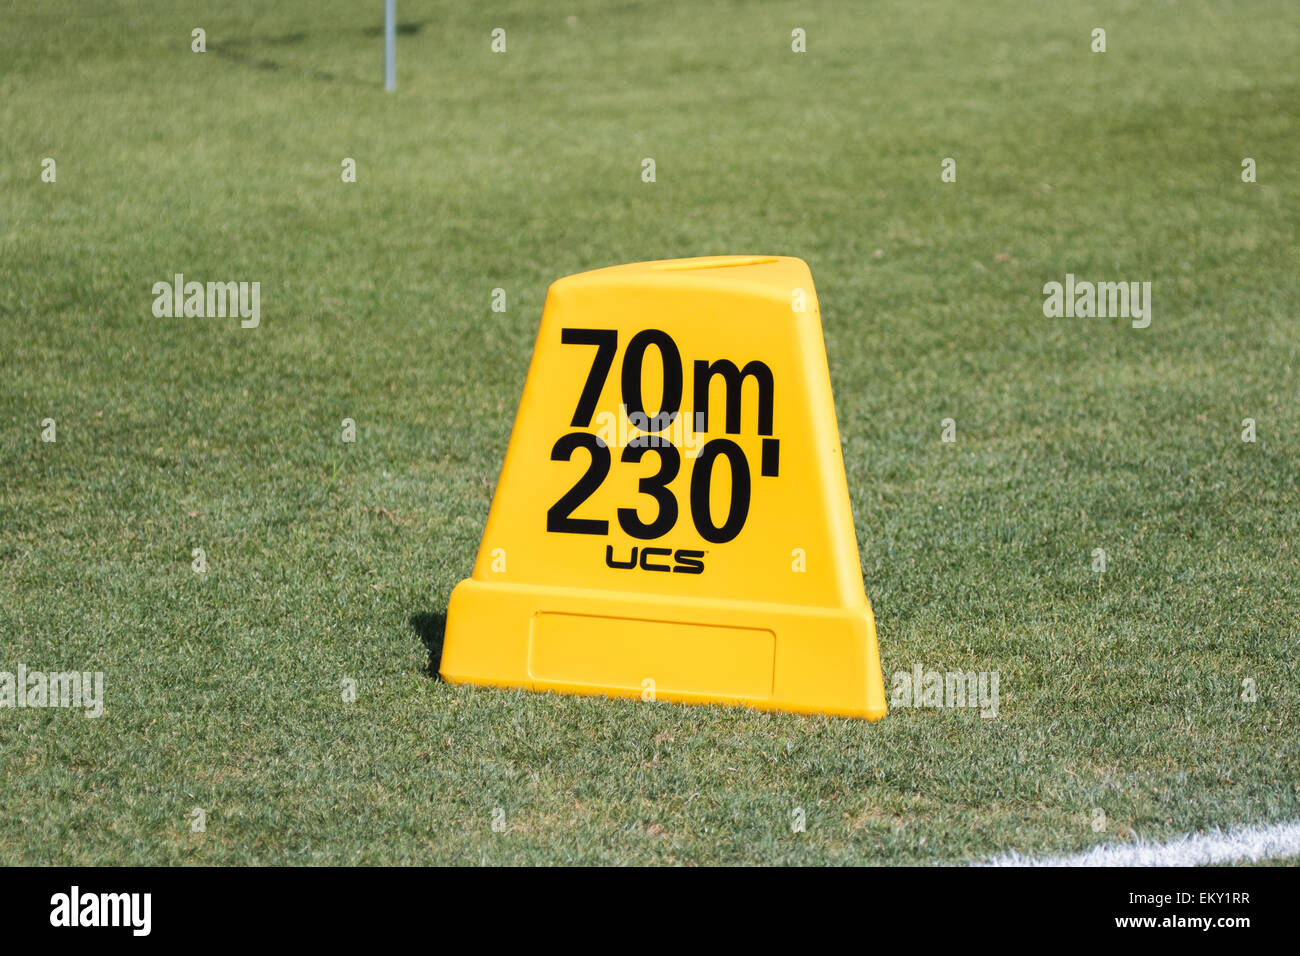 Track and field throwing Distance marker in feet and meters - Stock Image